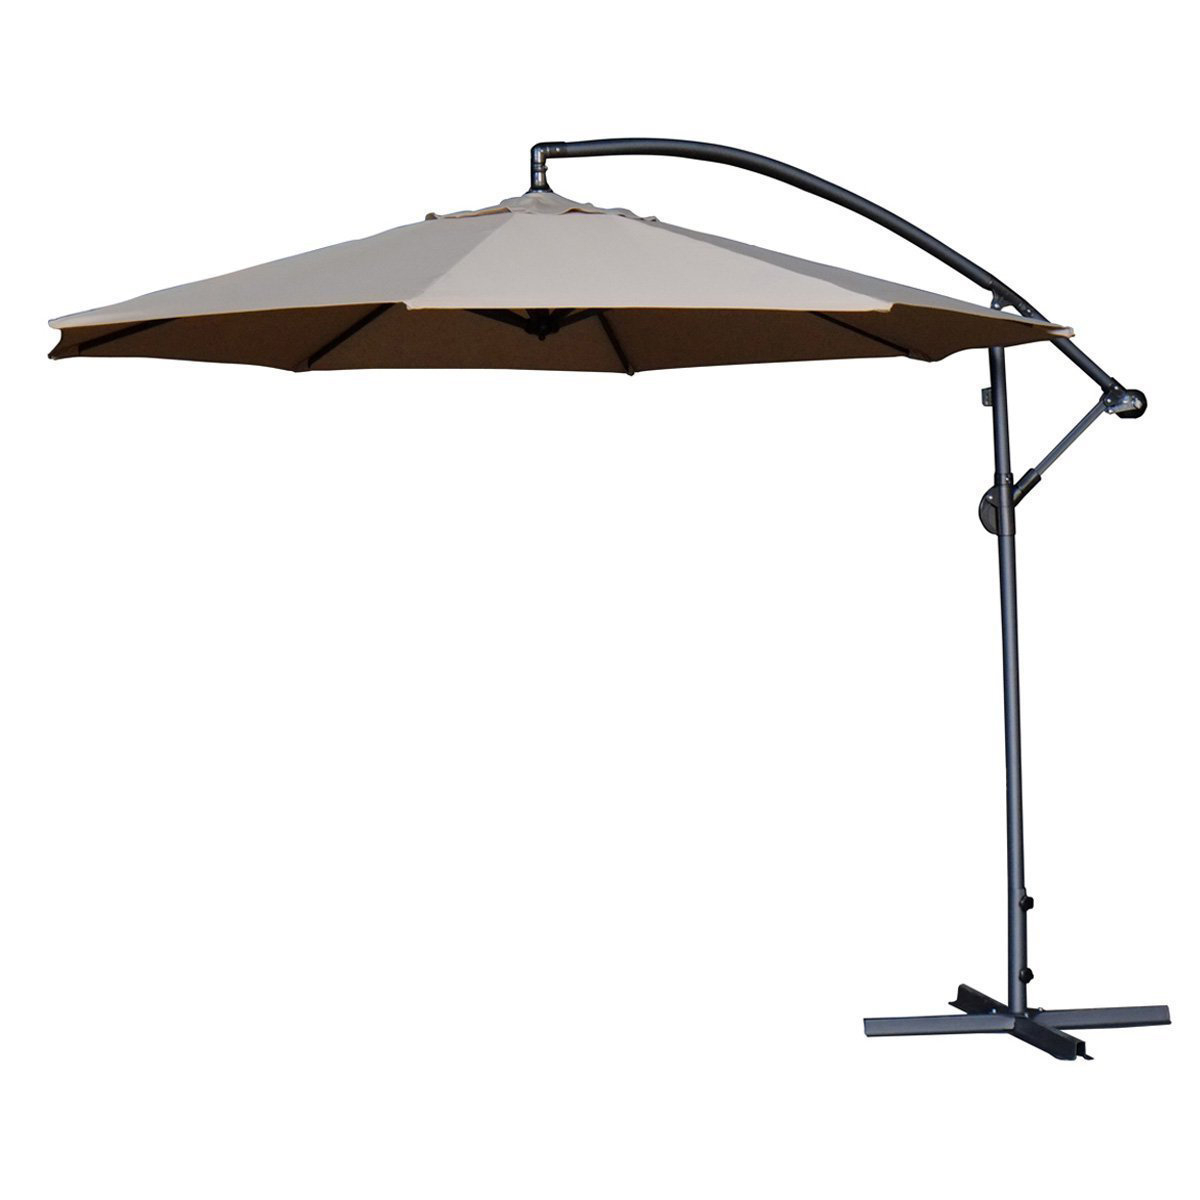 Irven 10' Cantilever Umbrella Within Recent Jaelynn Cantilever Umbrellas (View 18 of 20)